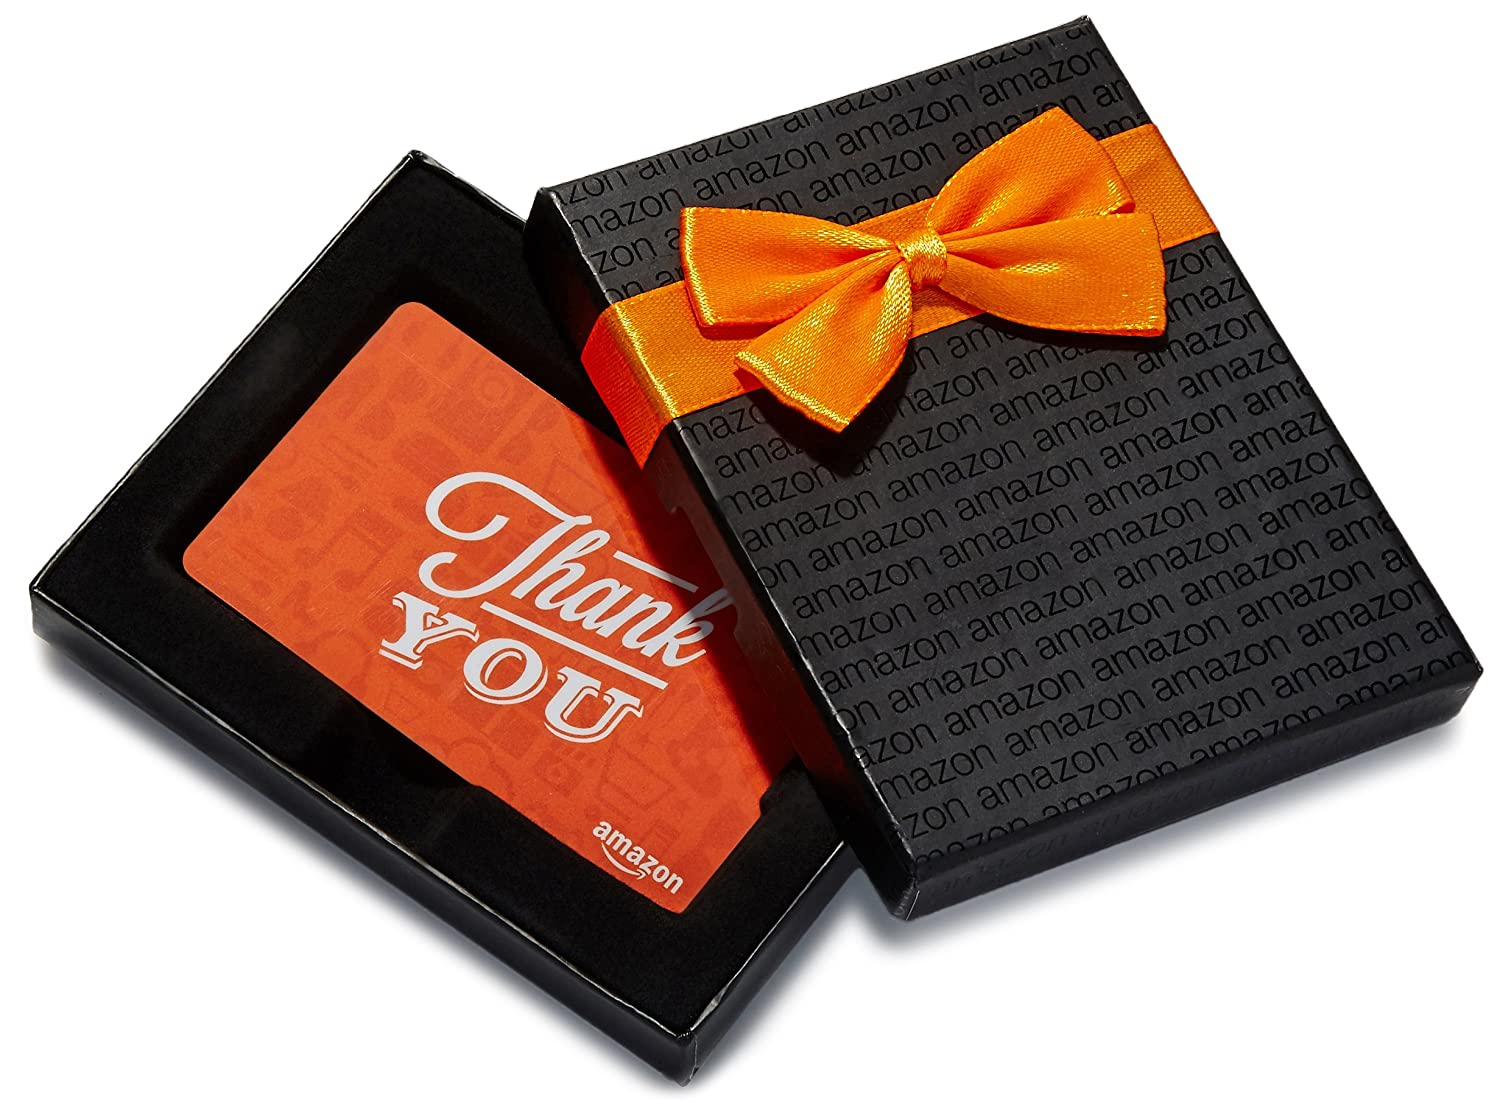 Amazon.ca $500 Gift Card in a Black Gift Box (Thank You Icons Card Design)